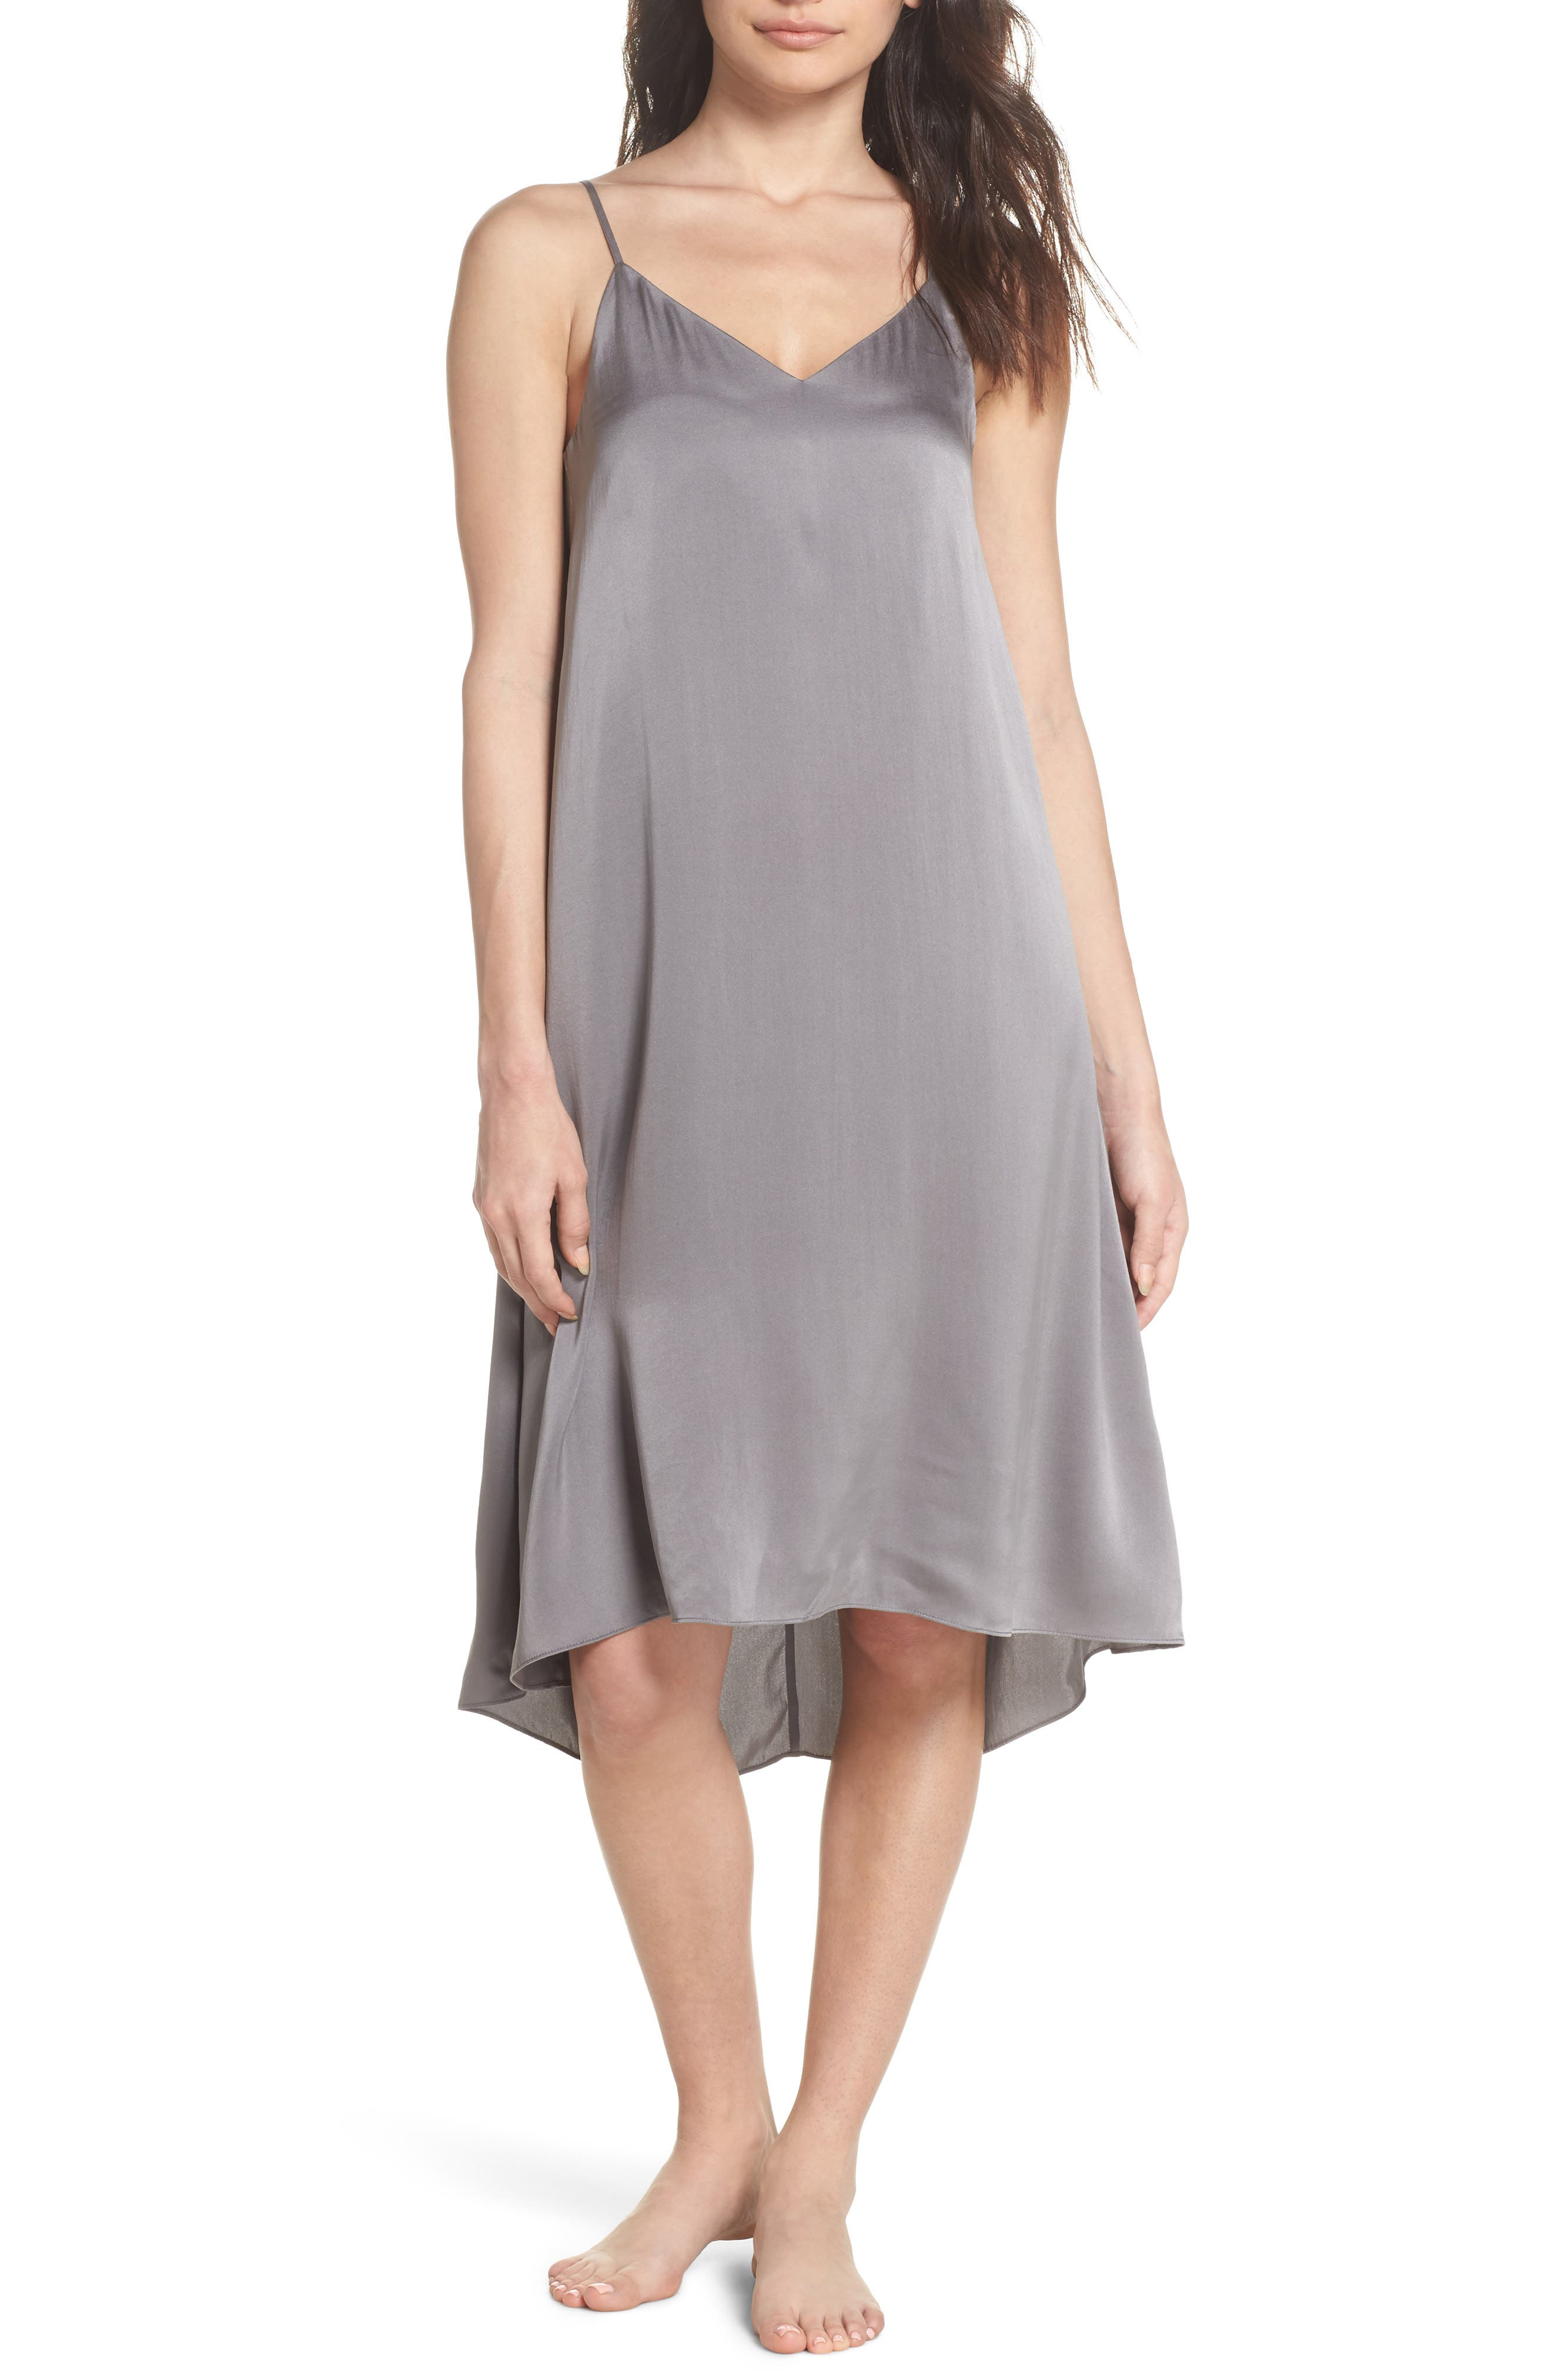 PAPINELLE Silk Nightgown, Main, color, CHARCOAL